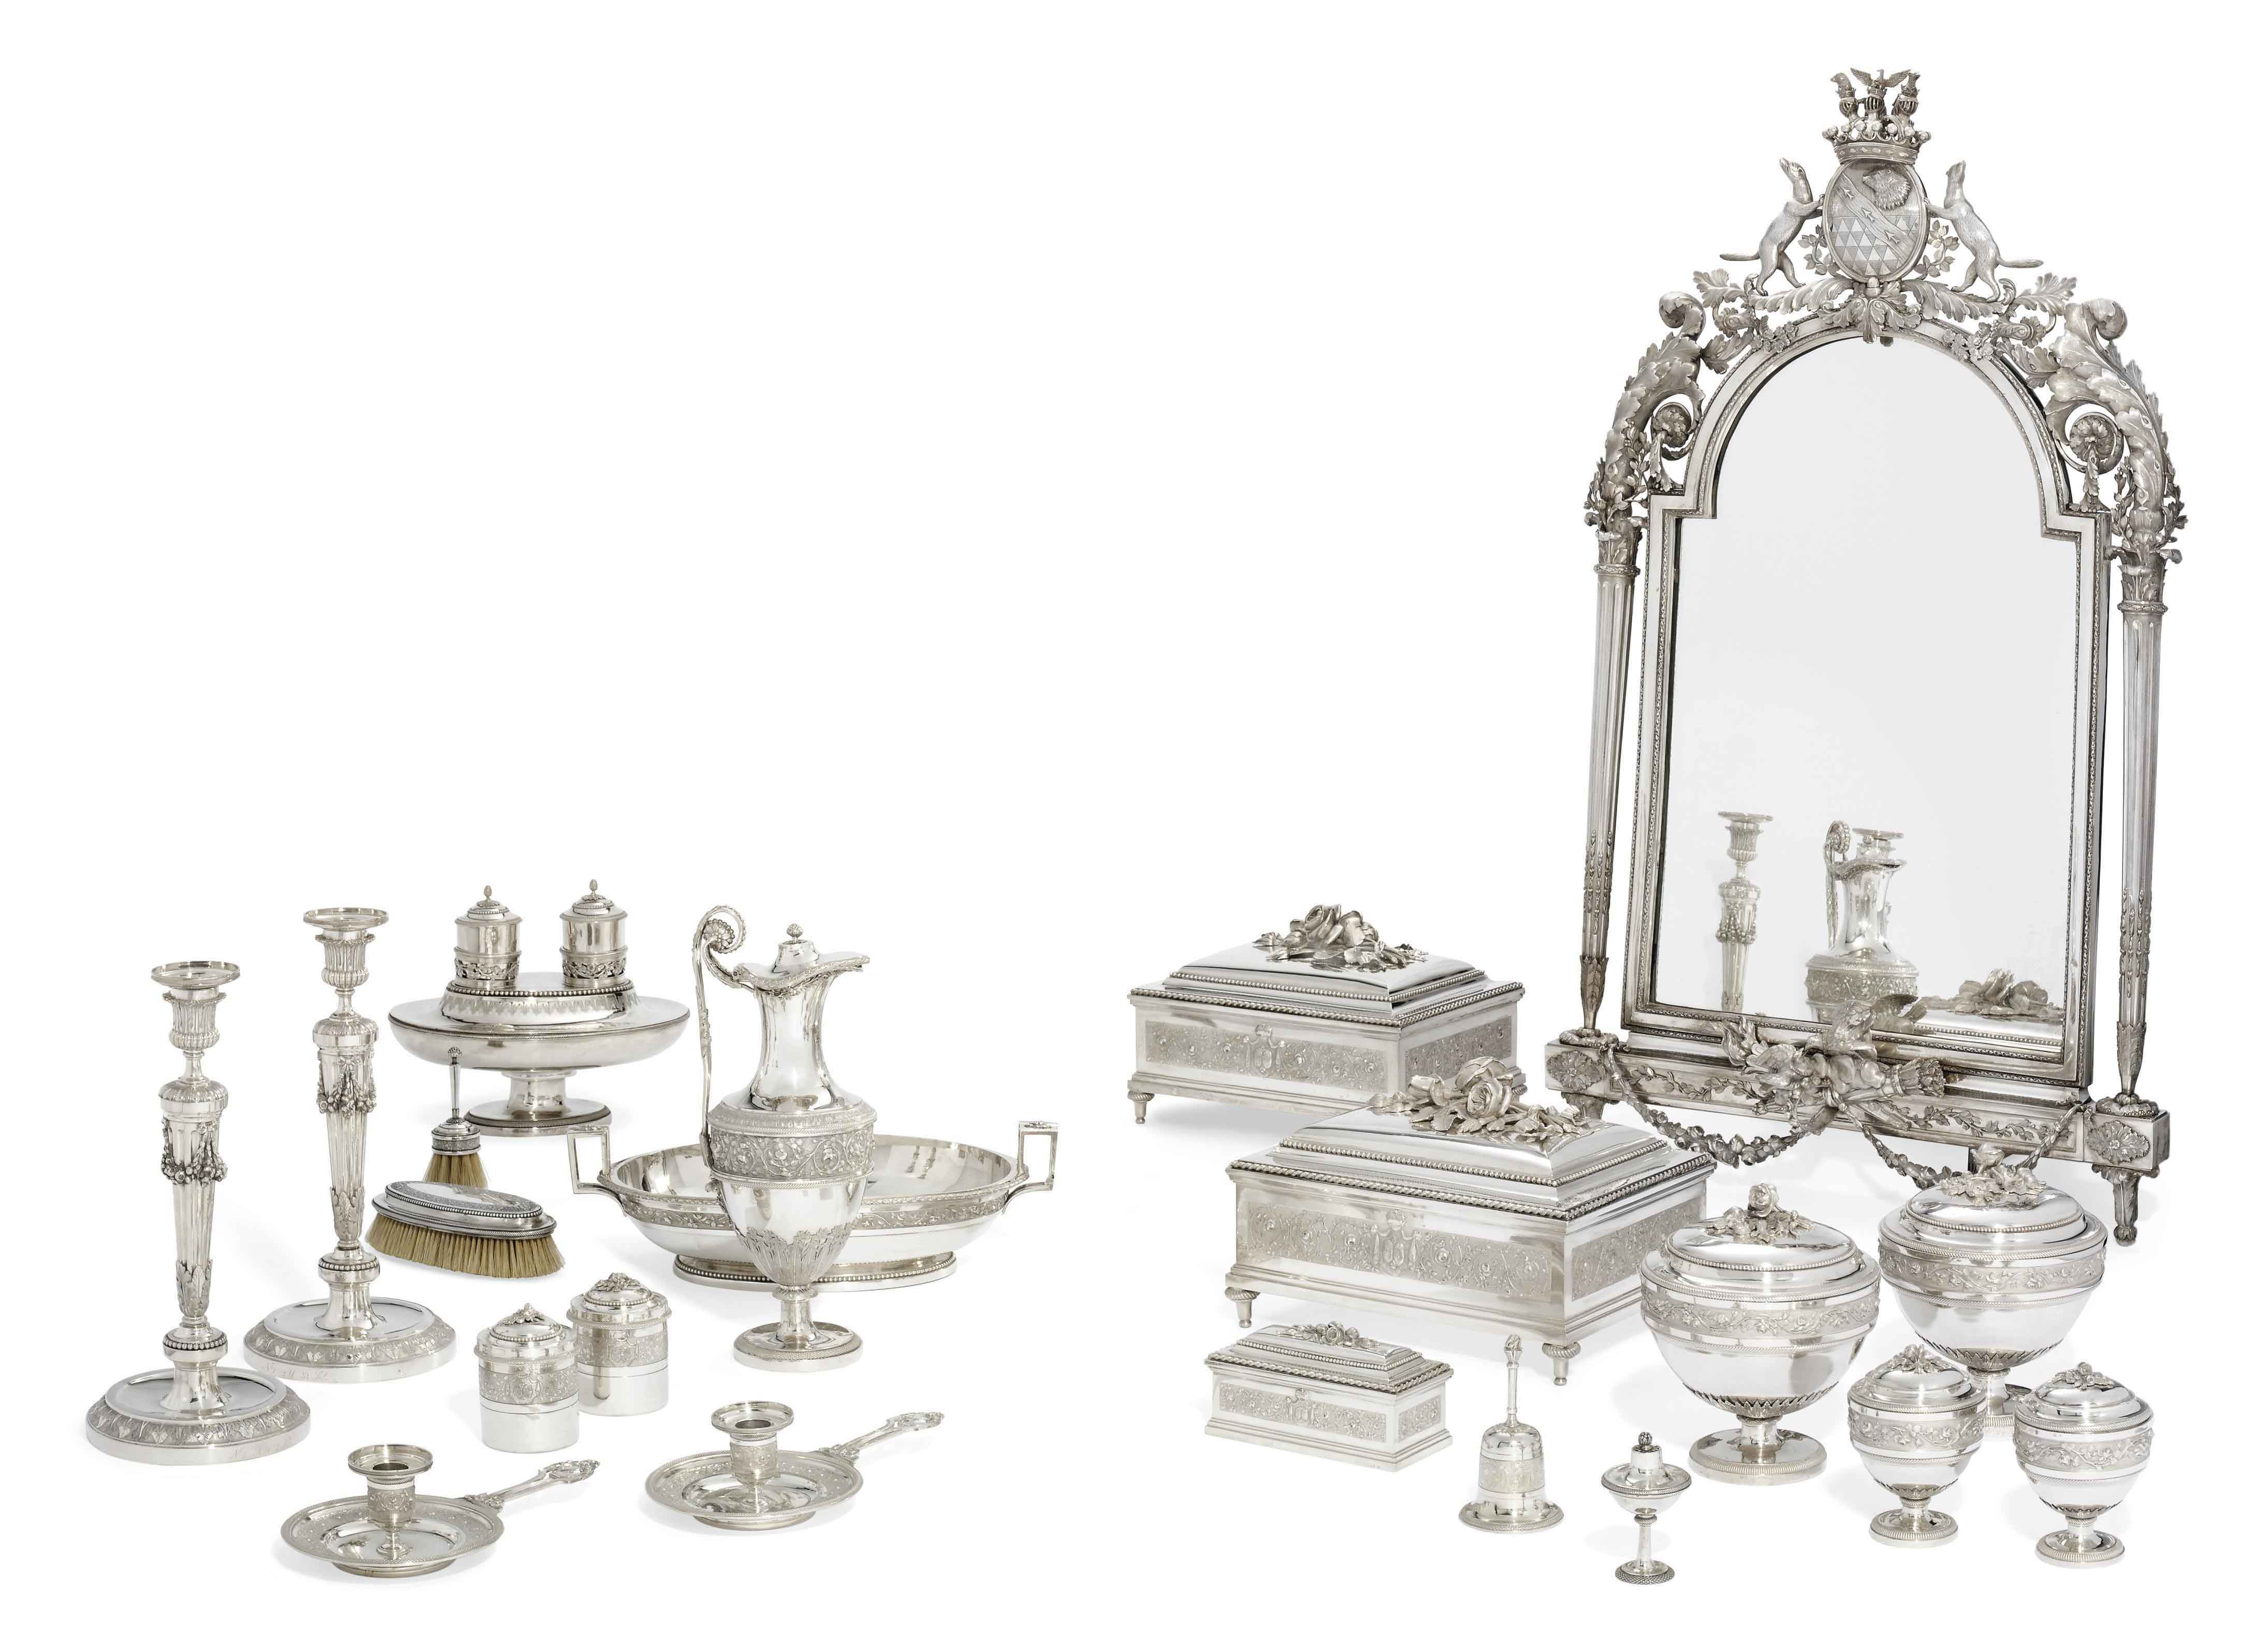 THE GALITZIN-STROGANOV SERVICE AN IMPORTANT LOUIS XVI SILVER DRESSING-TABLE SERVICE